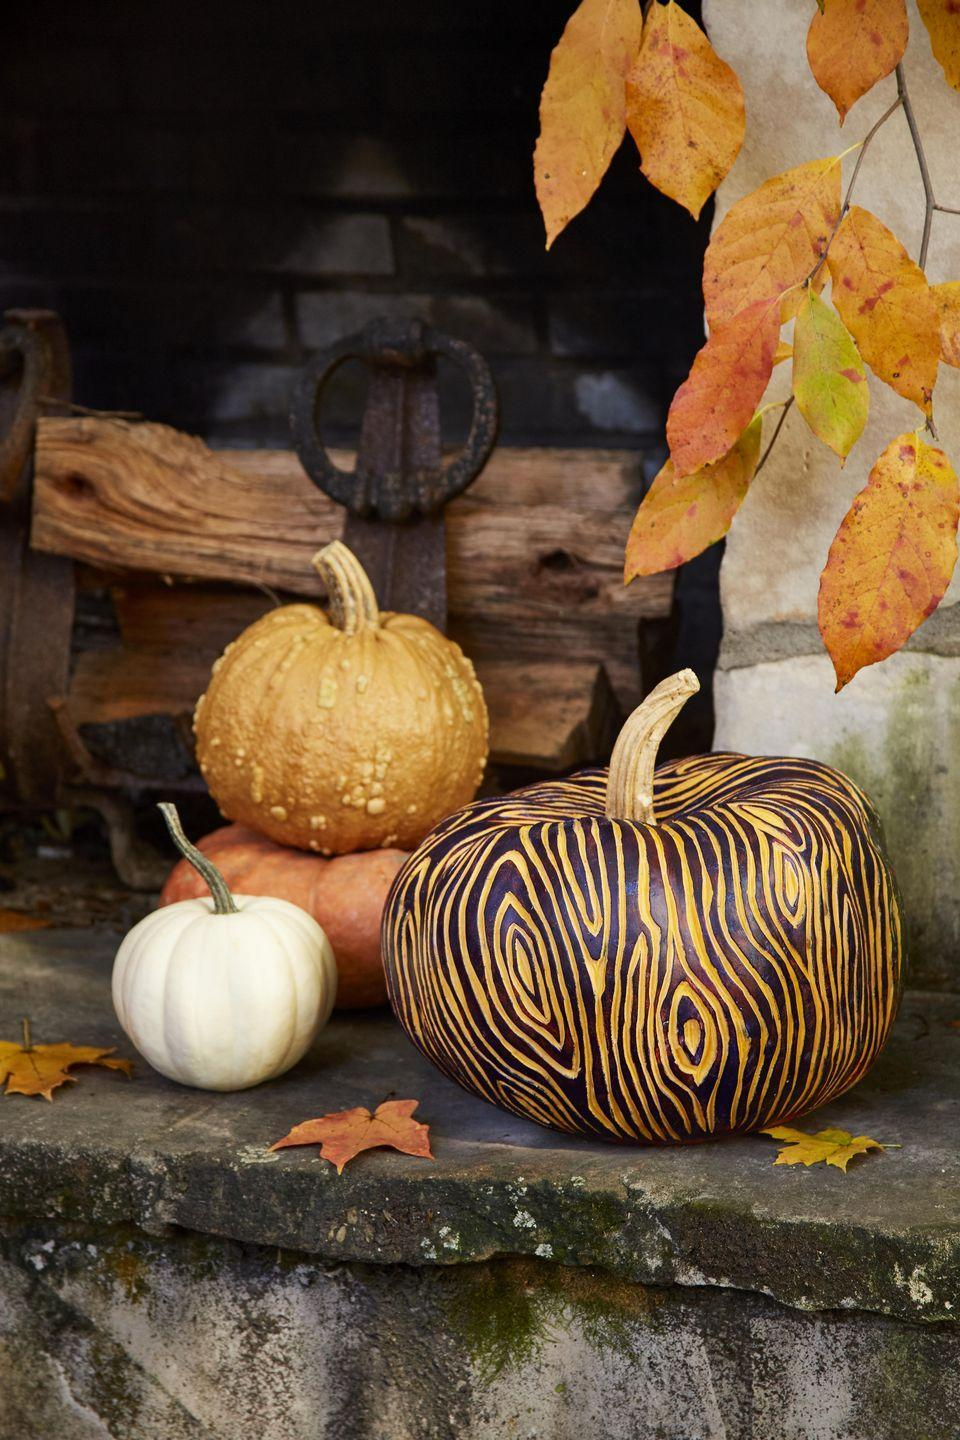 <p>Adding paint to an etched faux bois (the artistic imitation of wood) pumpkin helps the colors pop adding fun flair to this sophisticated pumpkin. Display on a covered porch next to the door or on a table.<strong><br></strong></p><p><strong><strong>Make the pumpkins: </strong></strong>Lightly sketch a faux bois pattern on a pumpkin with a pencil. Use a linoleum carving tool to etch out the pattern. Once complete, paint unetched part of the pumpkin with acrylic paint. If you get any paint in the etched grain you can remove it up with the carving tool once dry.</p>